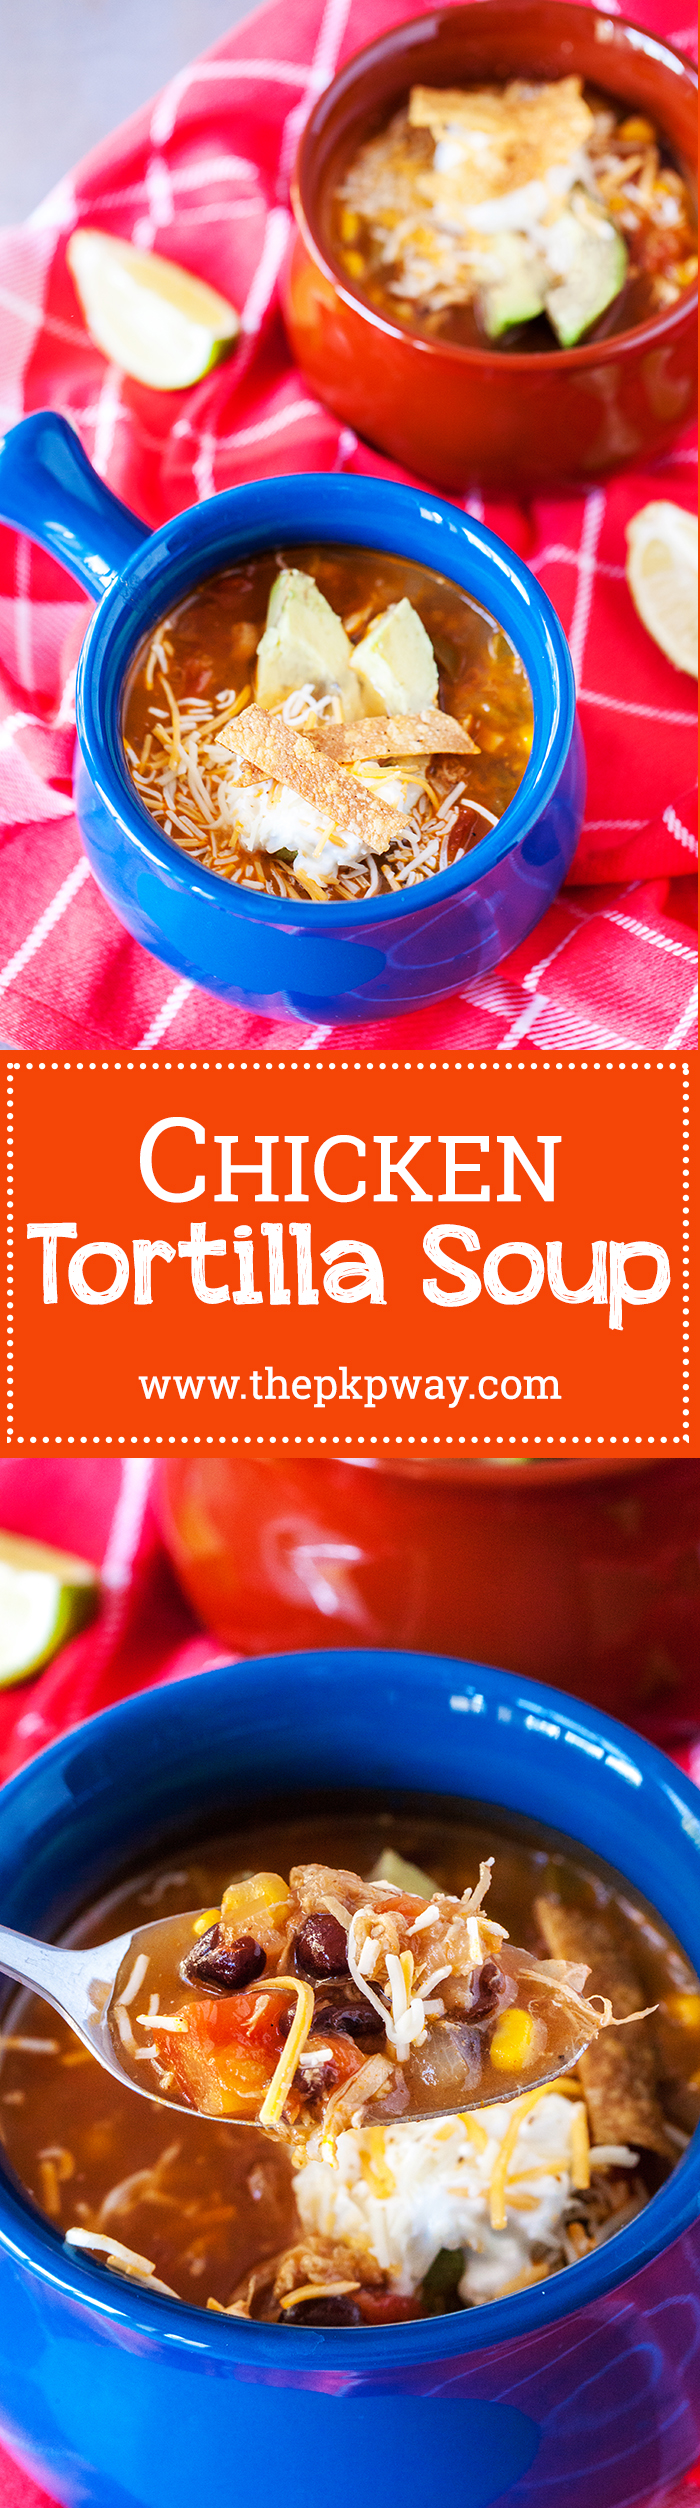 Chicken Tortilla Soup - One batch is not enough!